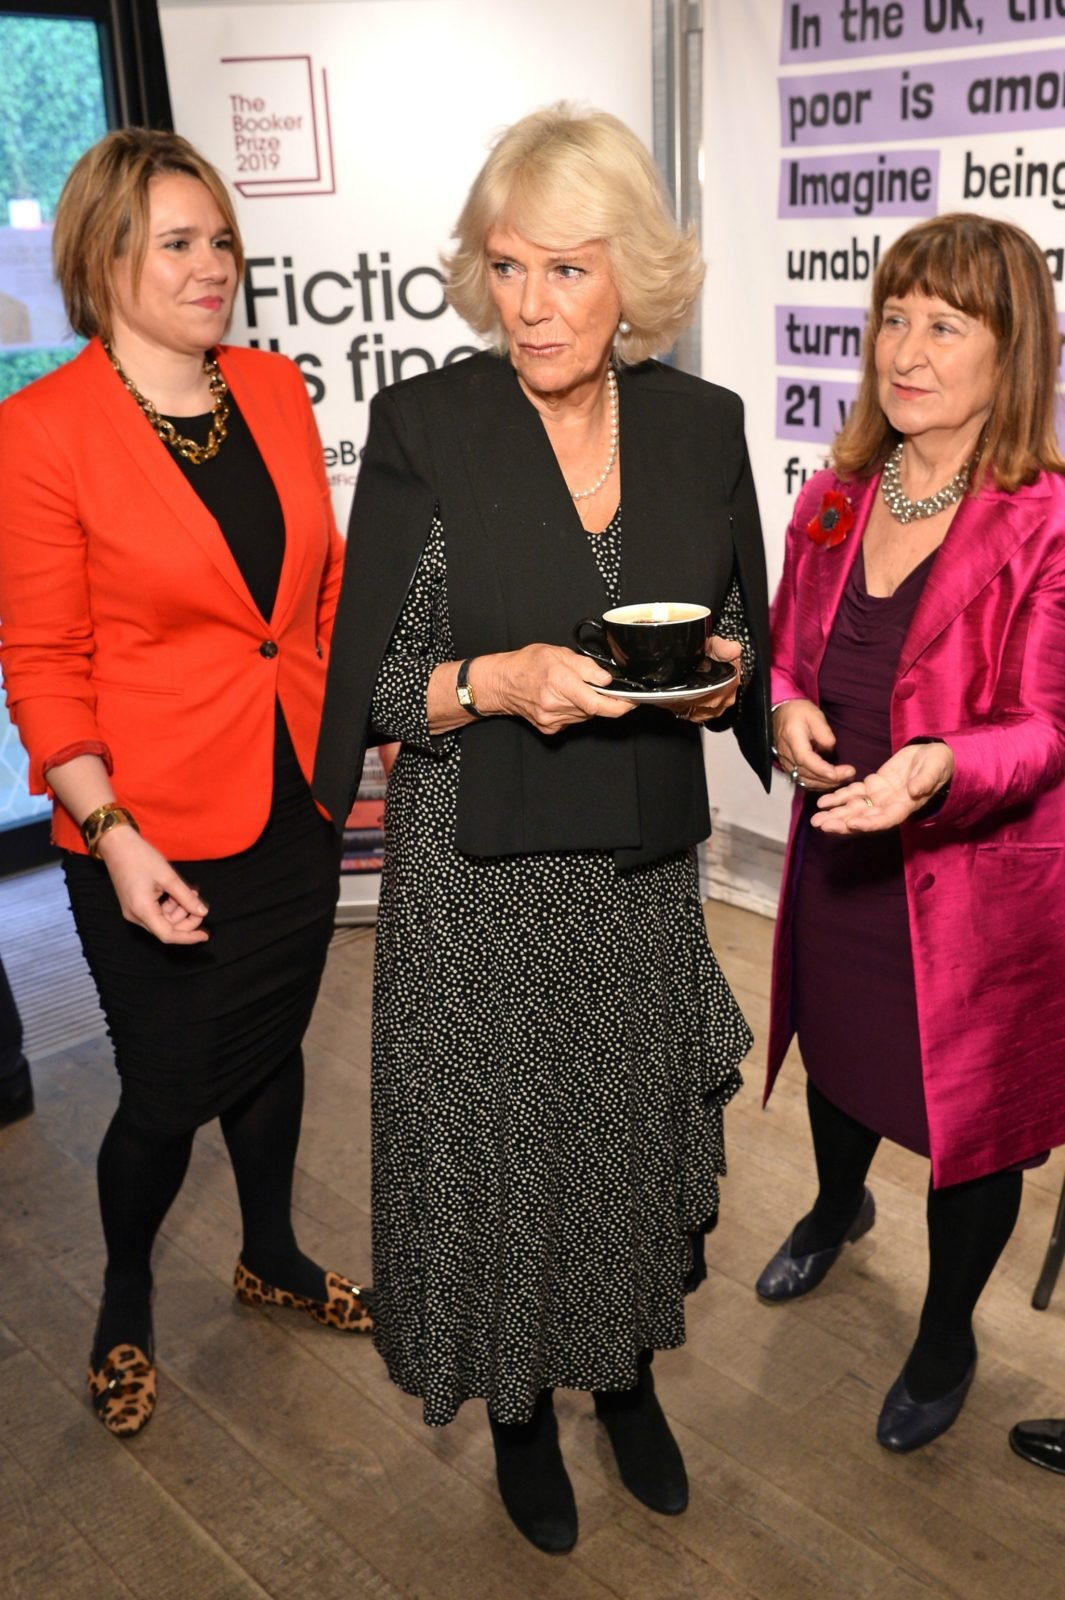 Camilla debuted a modern cape-style jacket over her traditional polka dot dress. Source: Getty.